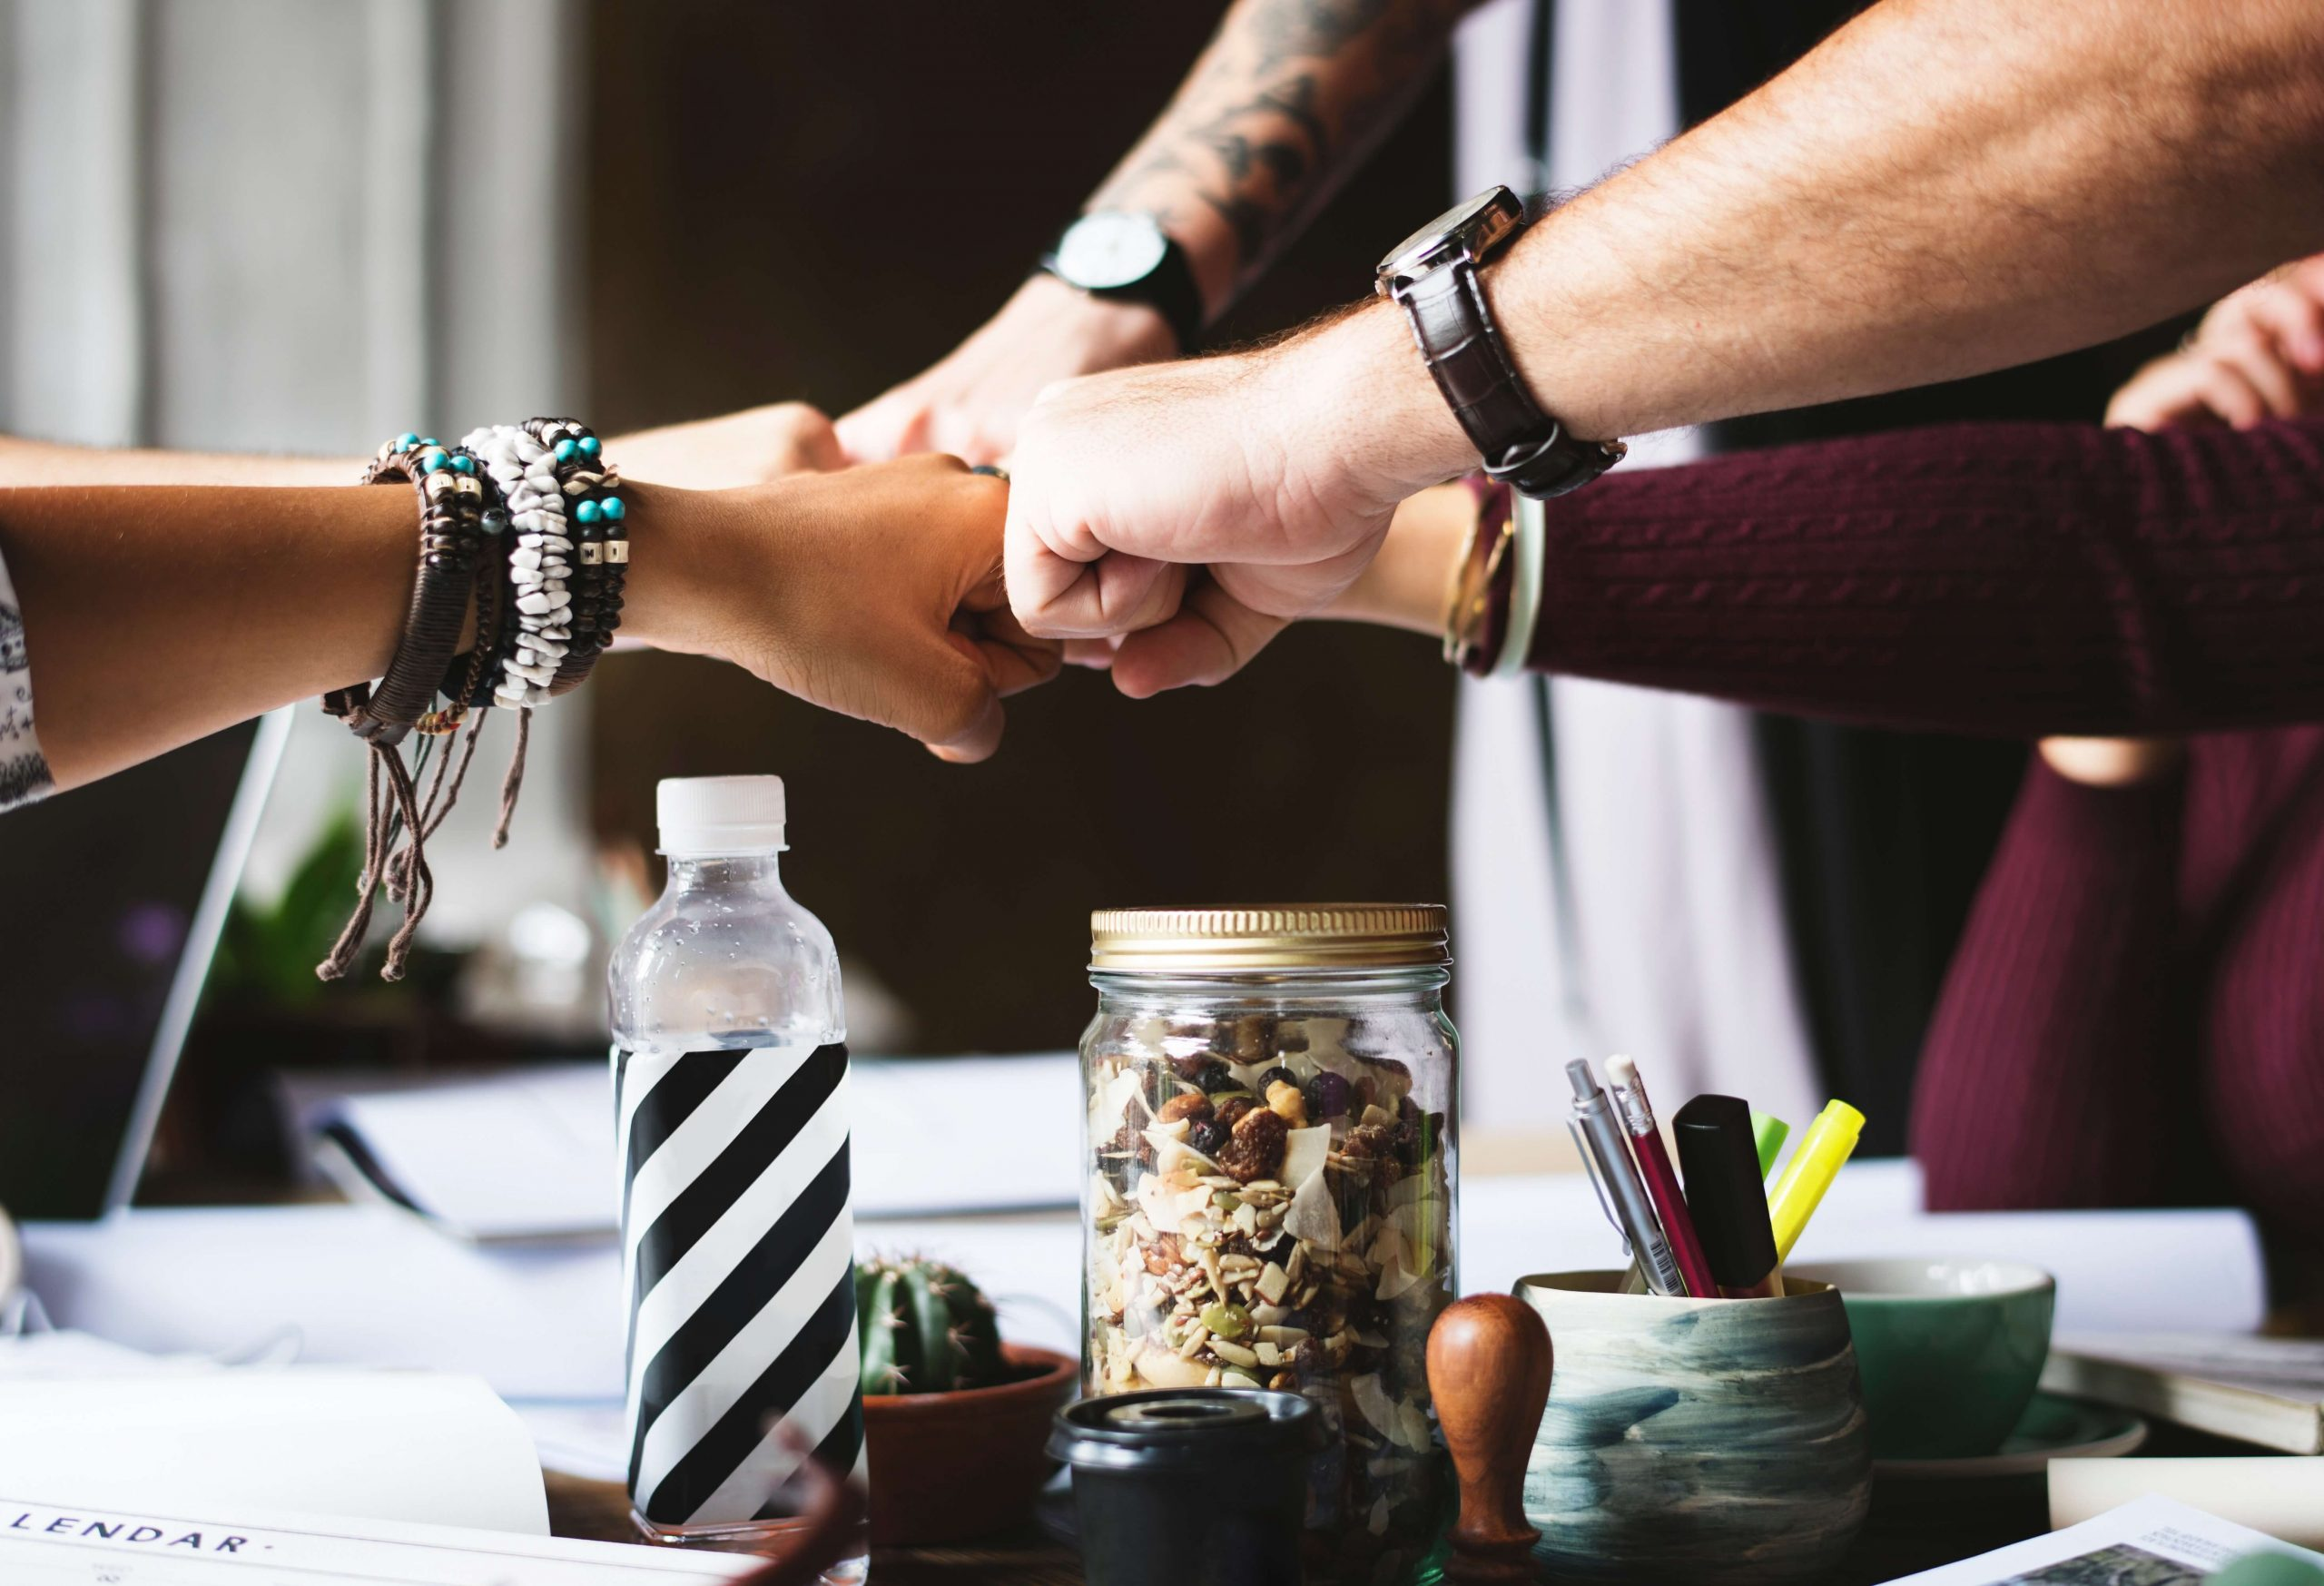 Why Is Collaboration So Important For Your Small Business?